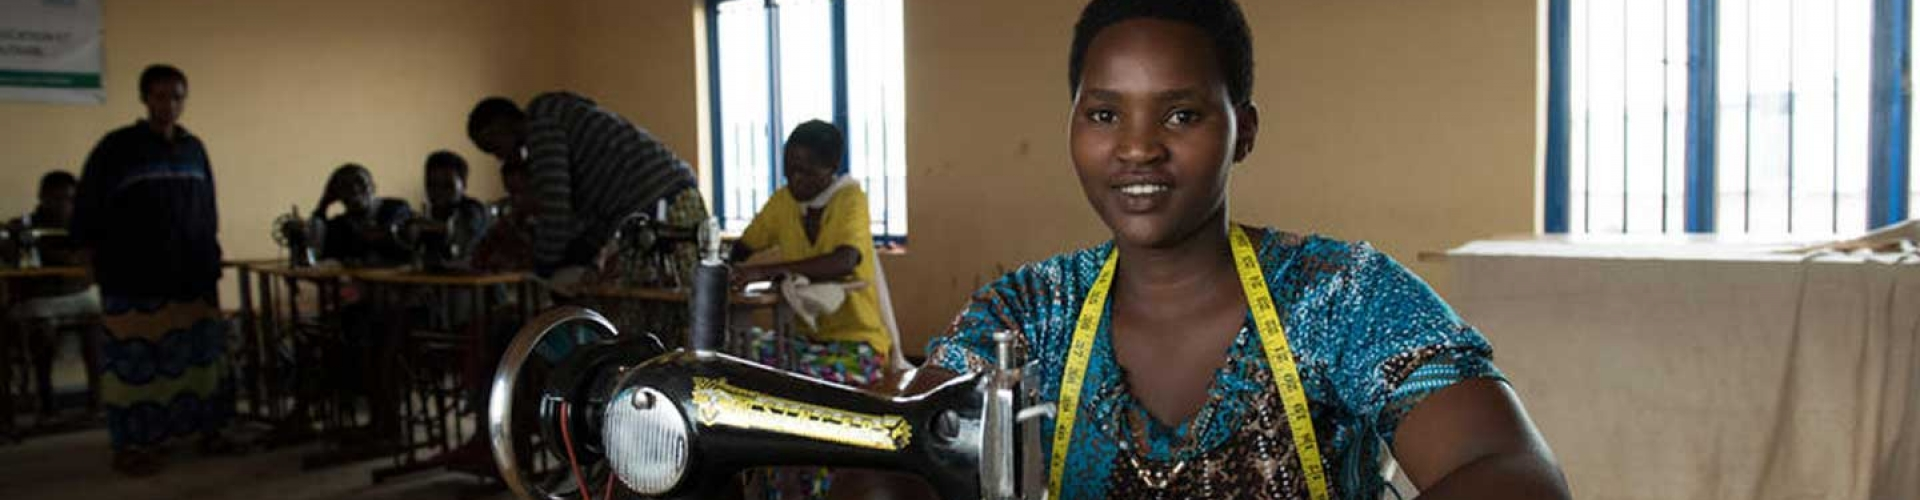 International Women's Day: UNLOCKING THE POWER OF DISPLACED WOMEN AND GIRLS